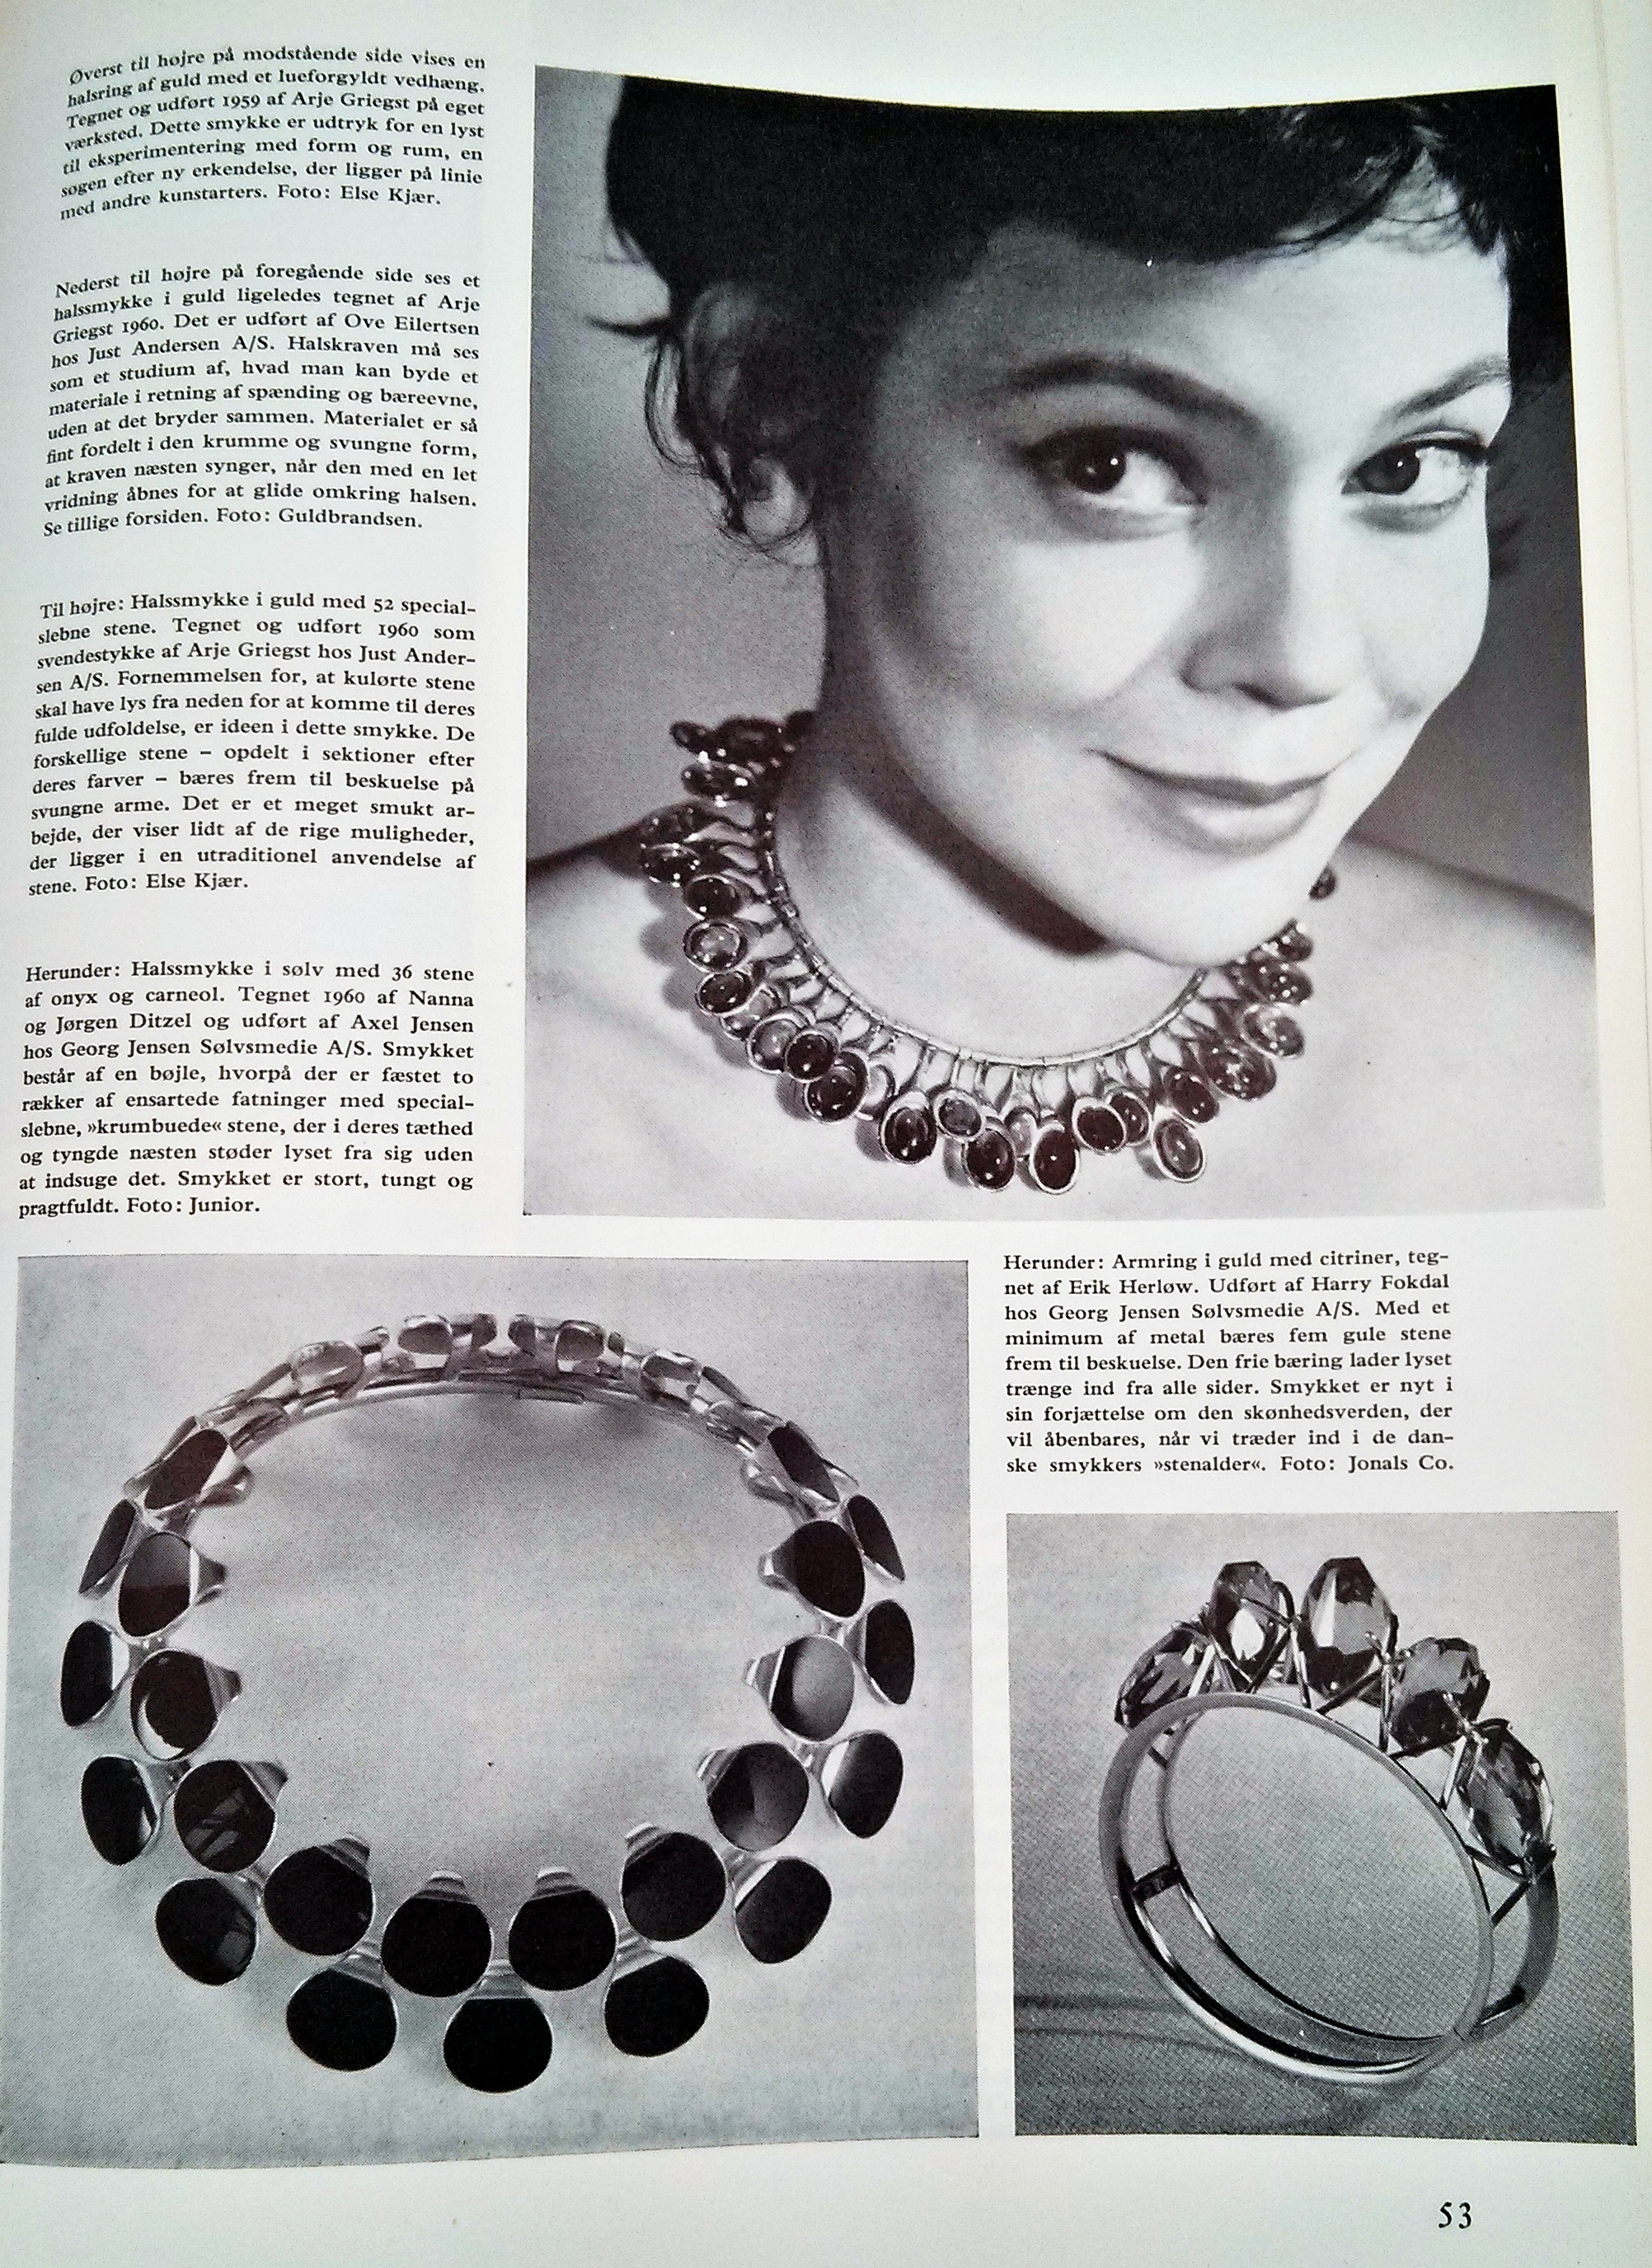 At the top right of this page, a necklace featuring 52 custom cut cabochons attached as small droplets of color. The necklace was created as an accompaniment to a bracelet designed by Arje Griegst for just Andersen in 1960. The stones are illuminated by the play of light upon the different stones arranged by color, lending a particular beauty to the piece.  Below, a necklace designed by Nanna and Jogen Ditzel in 1960 and executed by Axel Jensen for Georg Jensen. and uses 36 onyx and carnelian stones fastened in two rows with the stones shaped carefully to fit into the unusual curved settings. Heavy and dense, the necklaces playfully captures and absorbs the light creating an interesting effect.  Below to the right, a stunning gold bracelet with citrines designed by Erik Herlow and rendered by Harry Fokdal for Georg Jensen. The bracelet uses an truly different style of custm settings to lock the stones in place while allowing light to capture the stones from all sides and uses a minimal amount of metal.